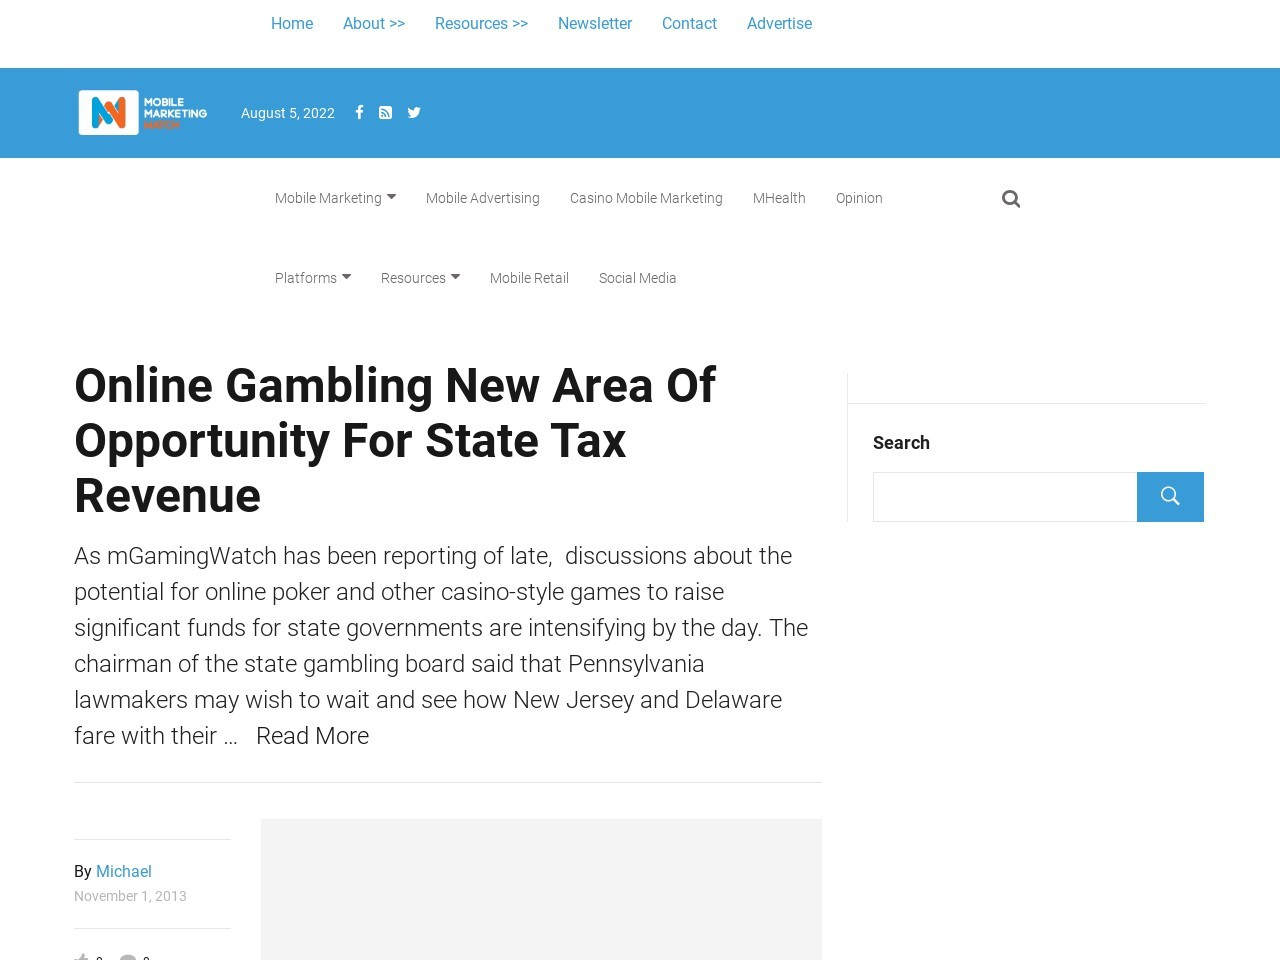 Online Gambling New Area Of Opportunity For State Tax Revenue